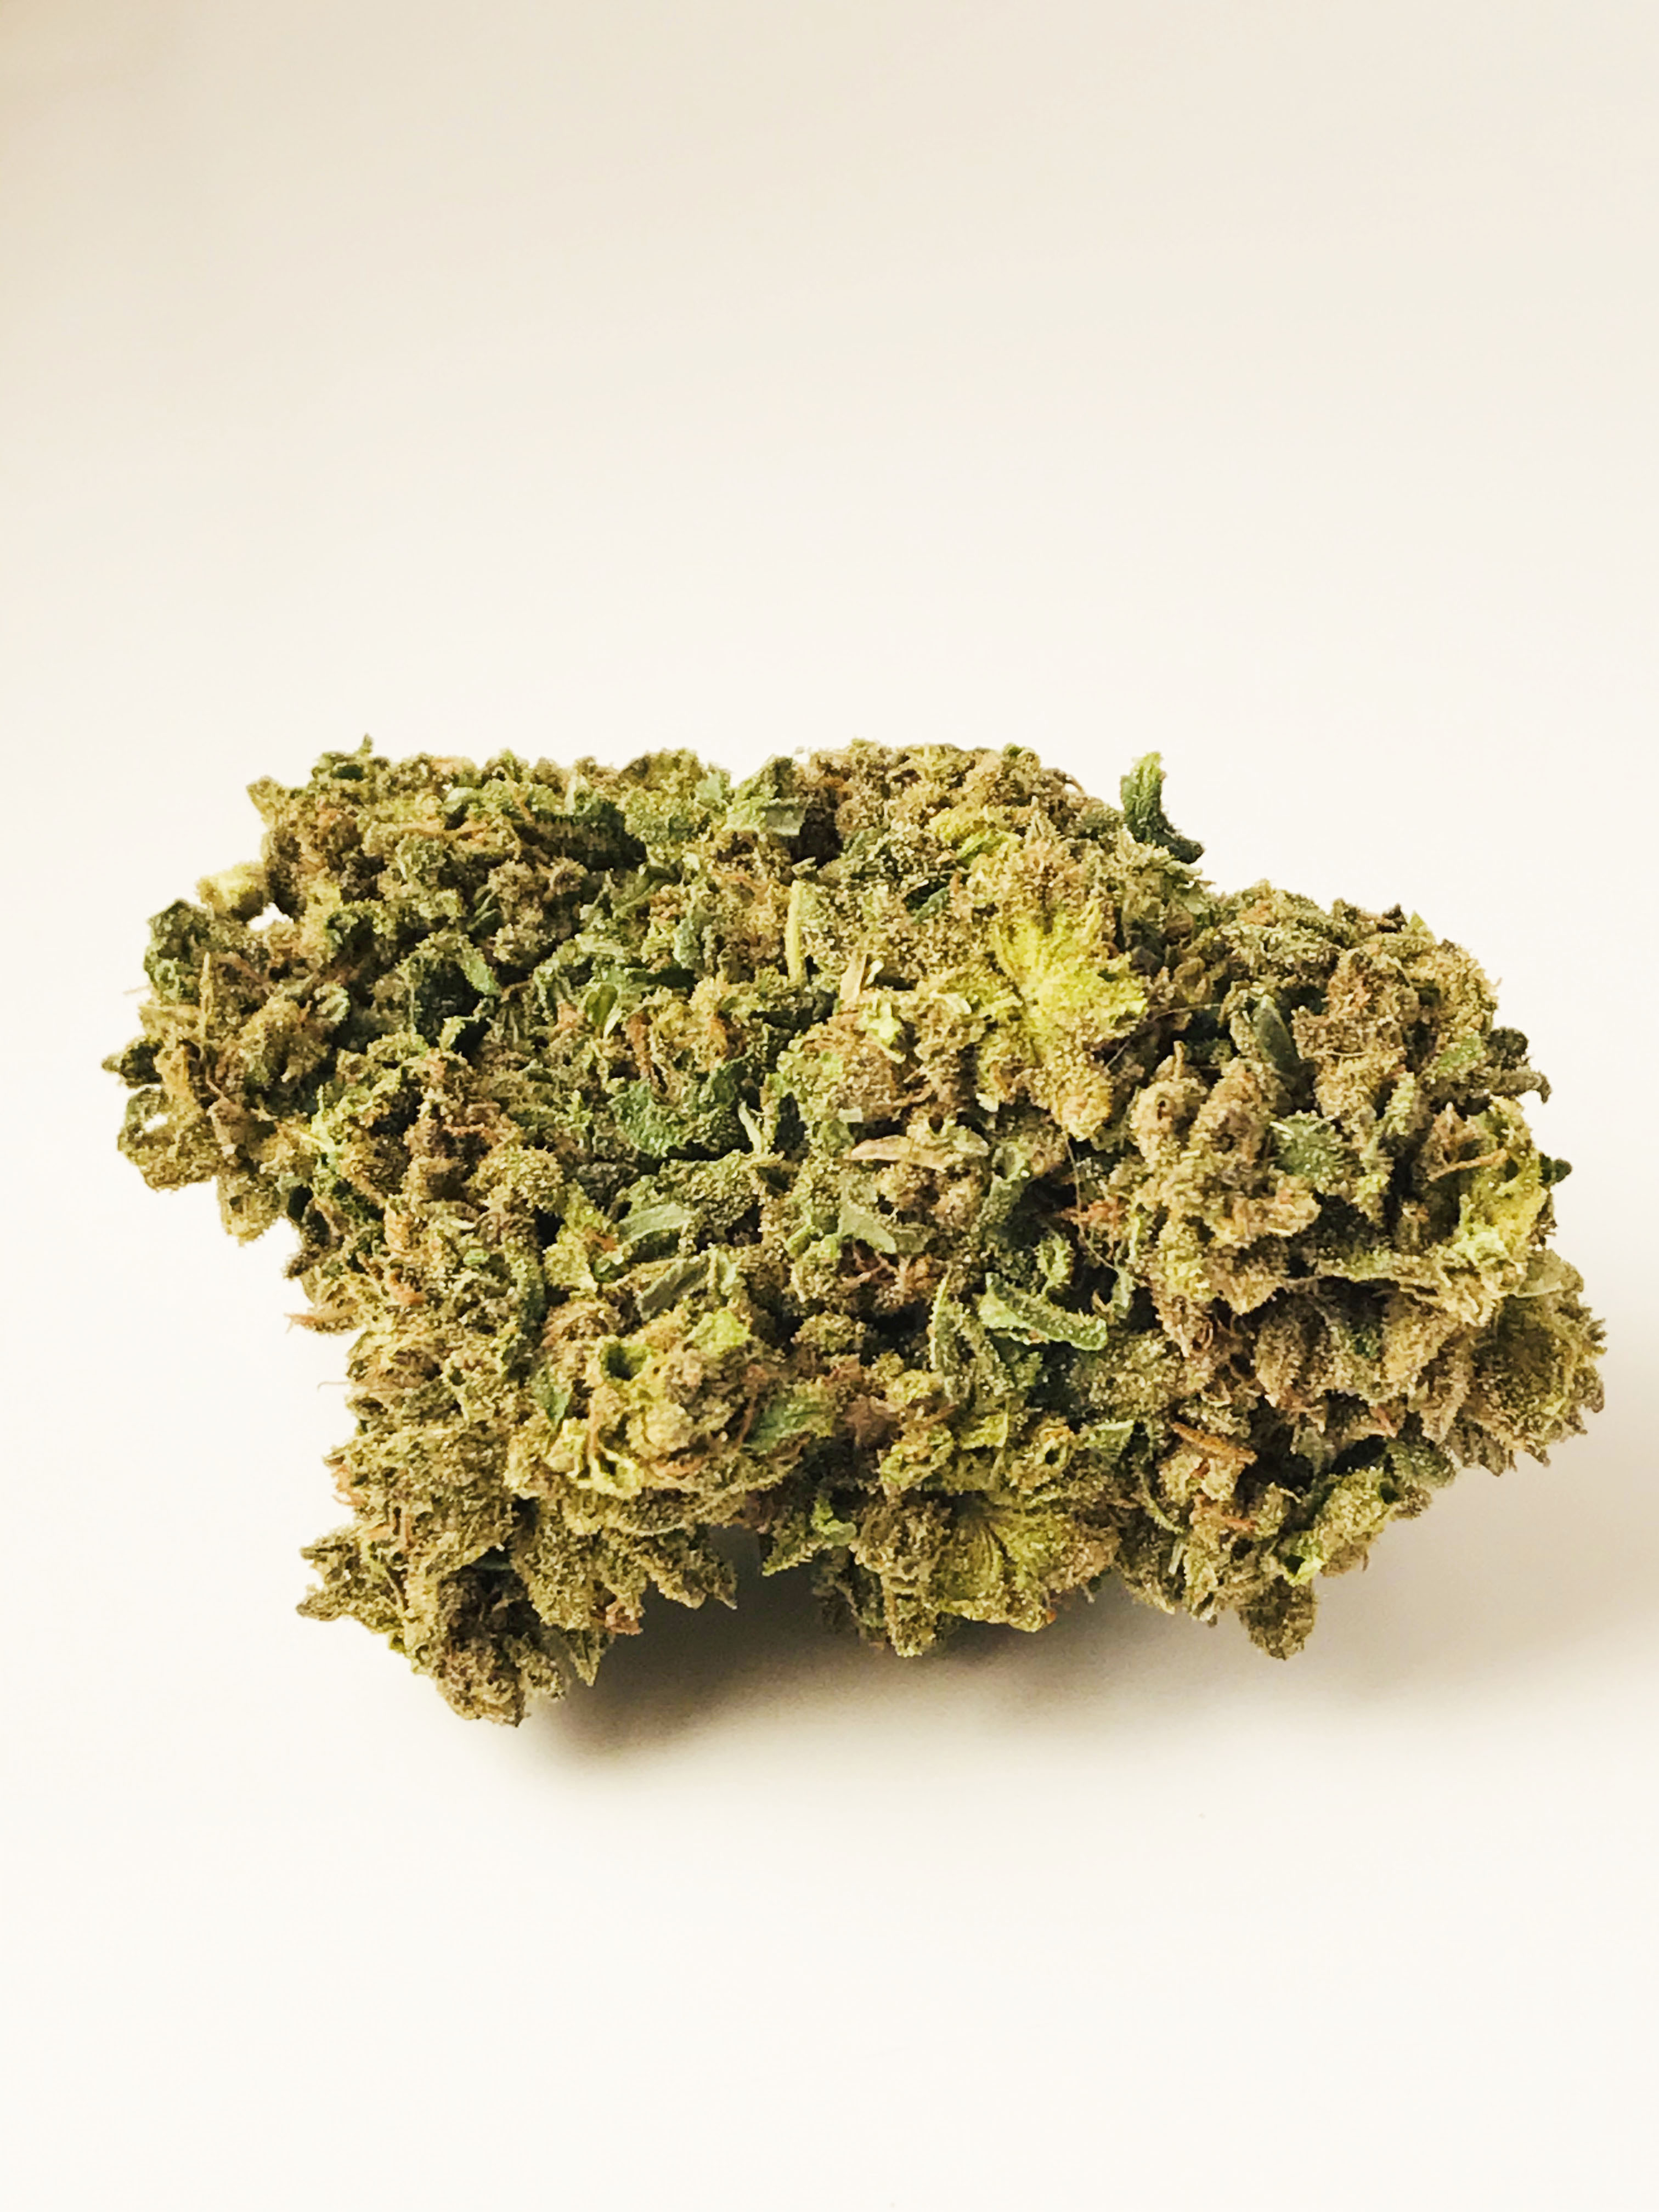 TROPHY WIFE - HAND TRIMMED FLOWER